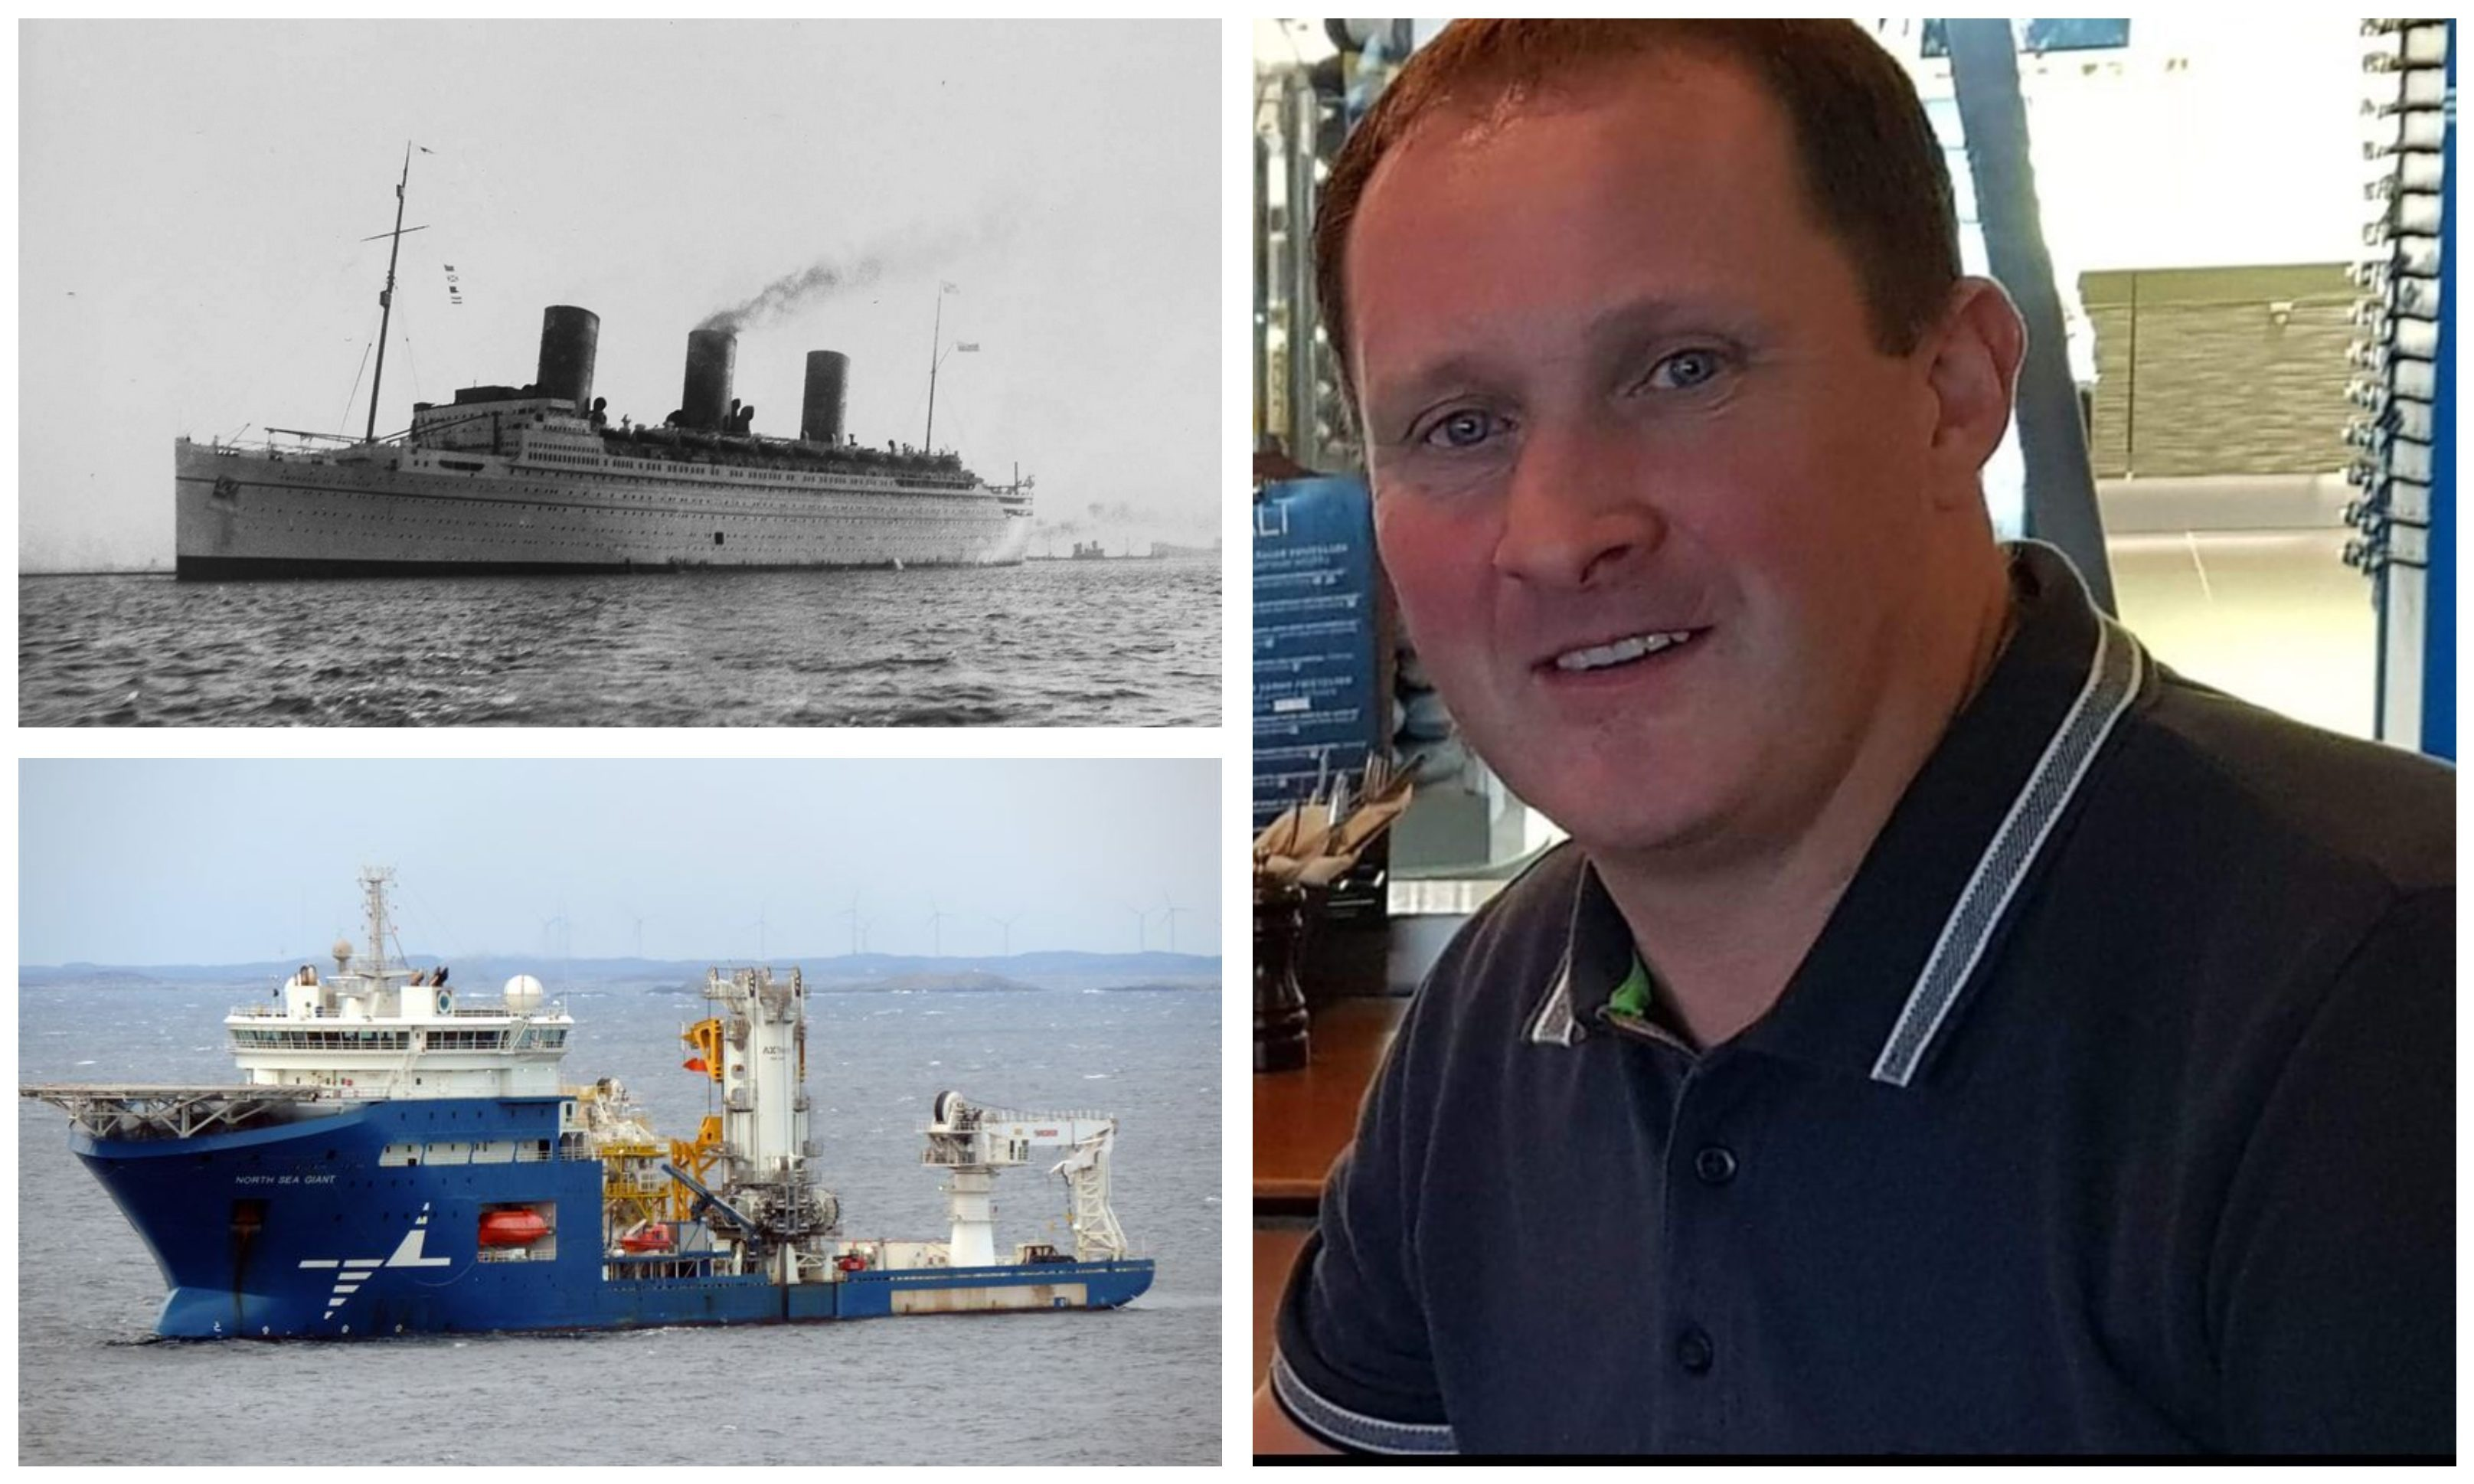 Left: RMS Empress of Britain/North Sea Giant.  Right: Ian Richard.